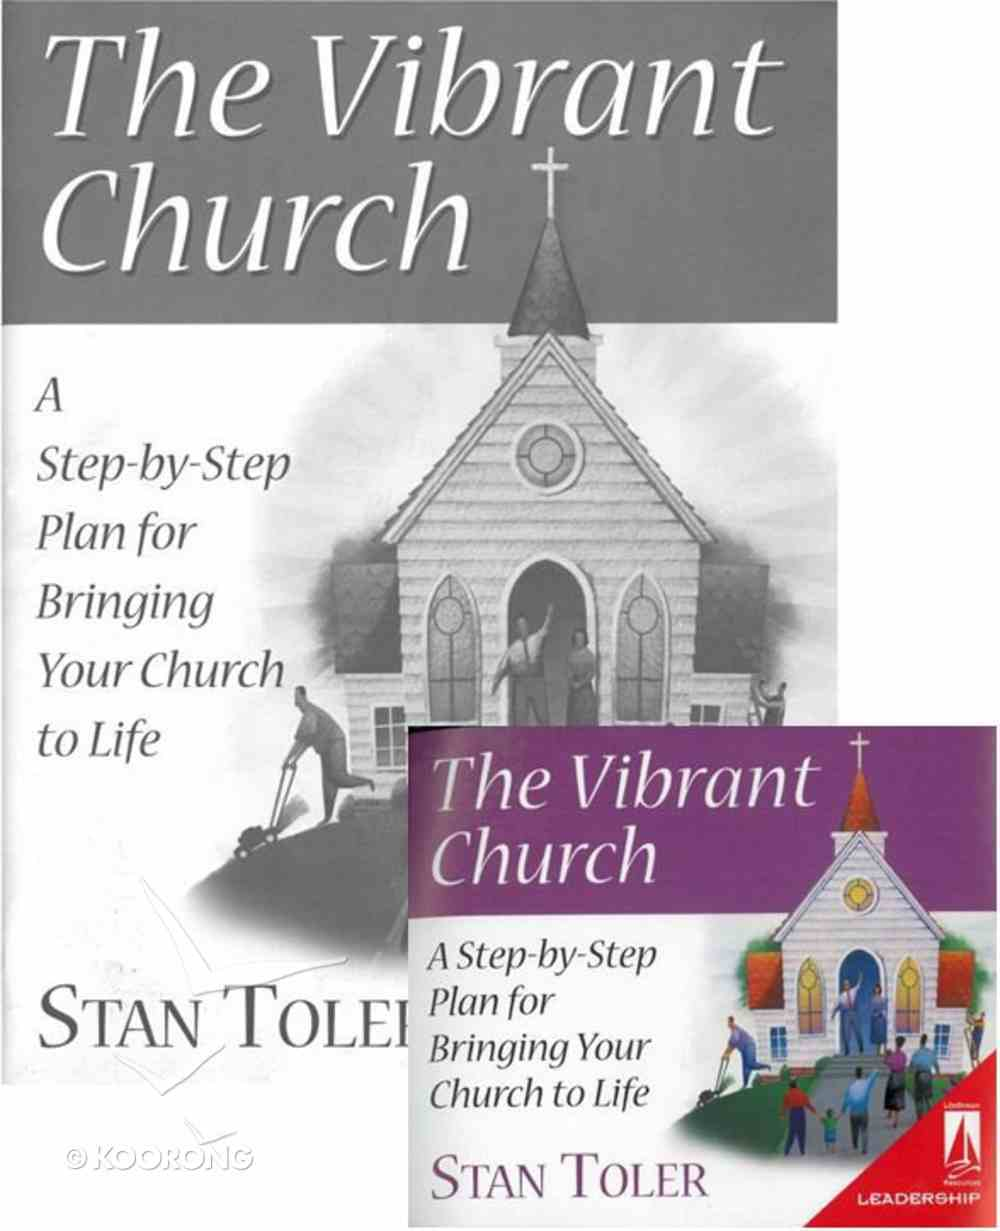 The Vibrant Church (Lifestream Resources Kits Series) Ring Bound